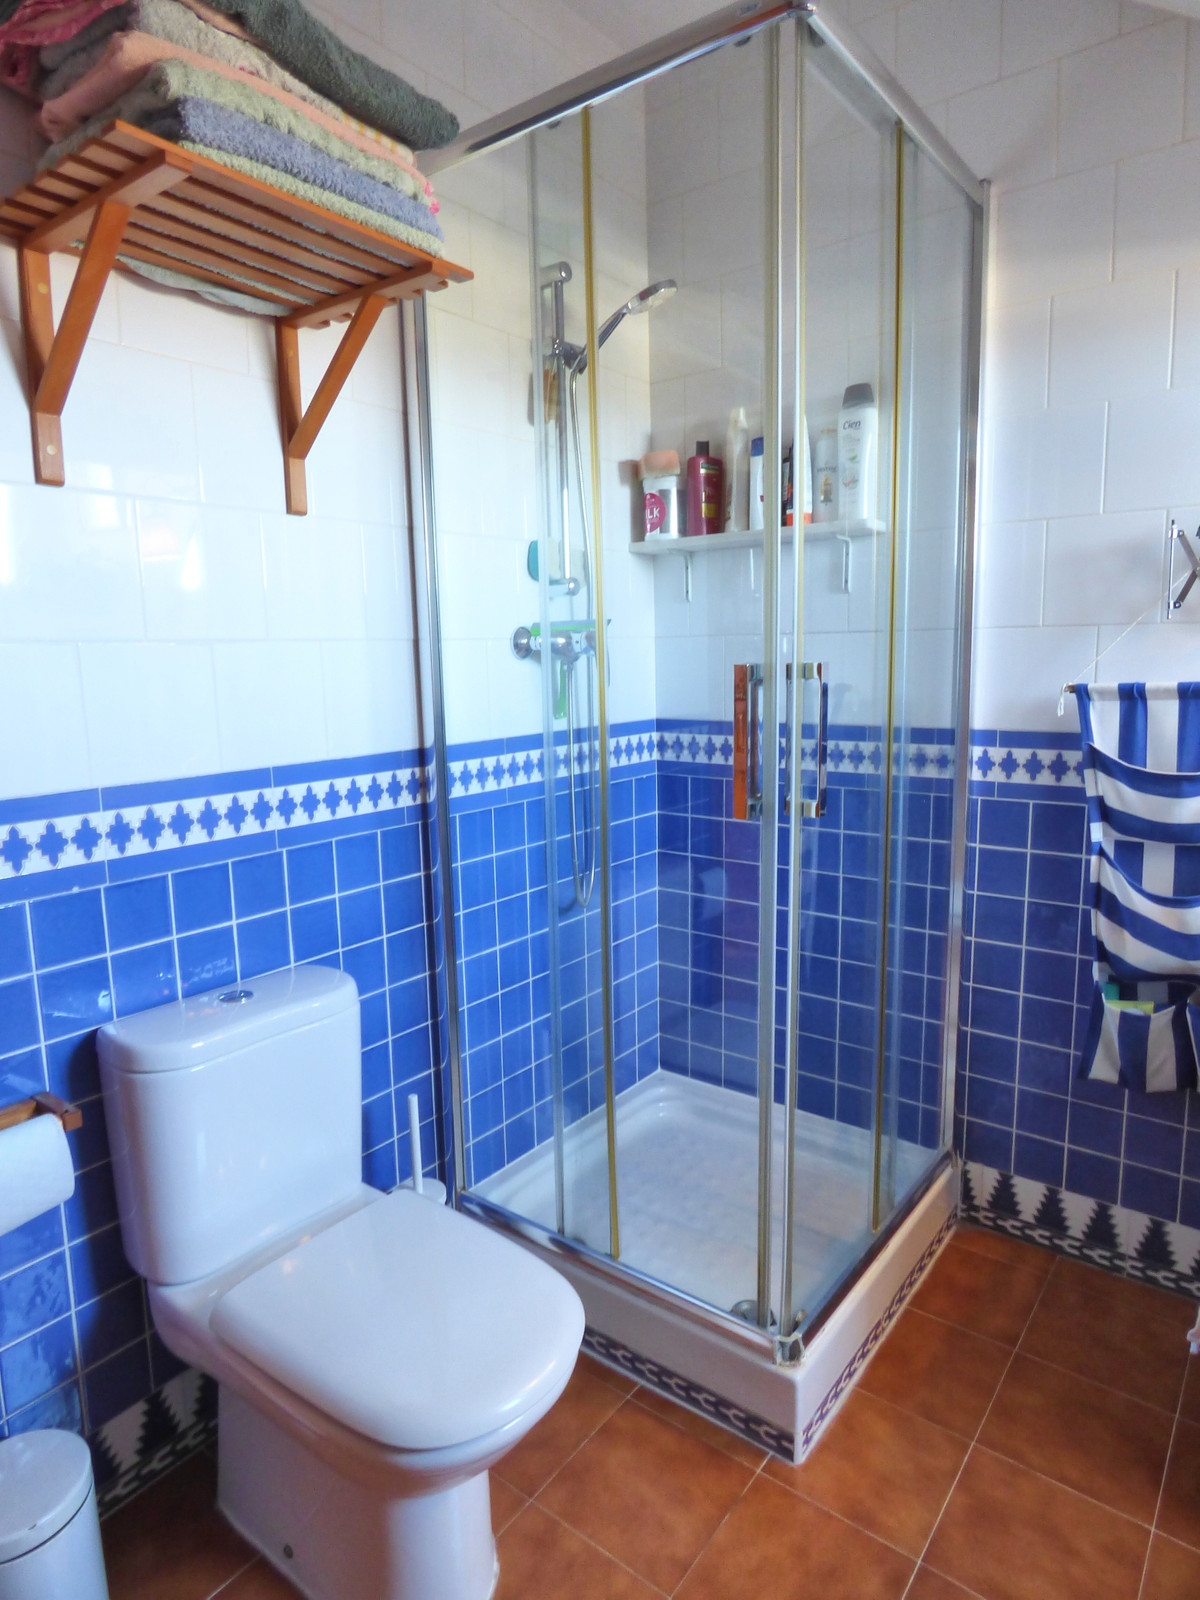 2 Bedroom Penthouse Apartment For Sale Alhaurín el Grande